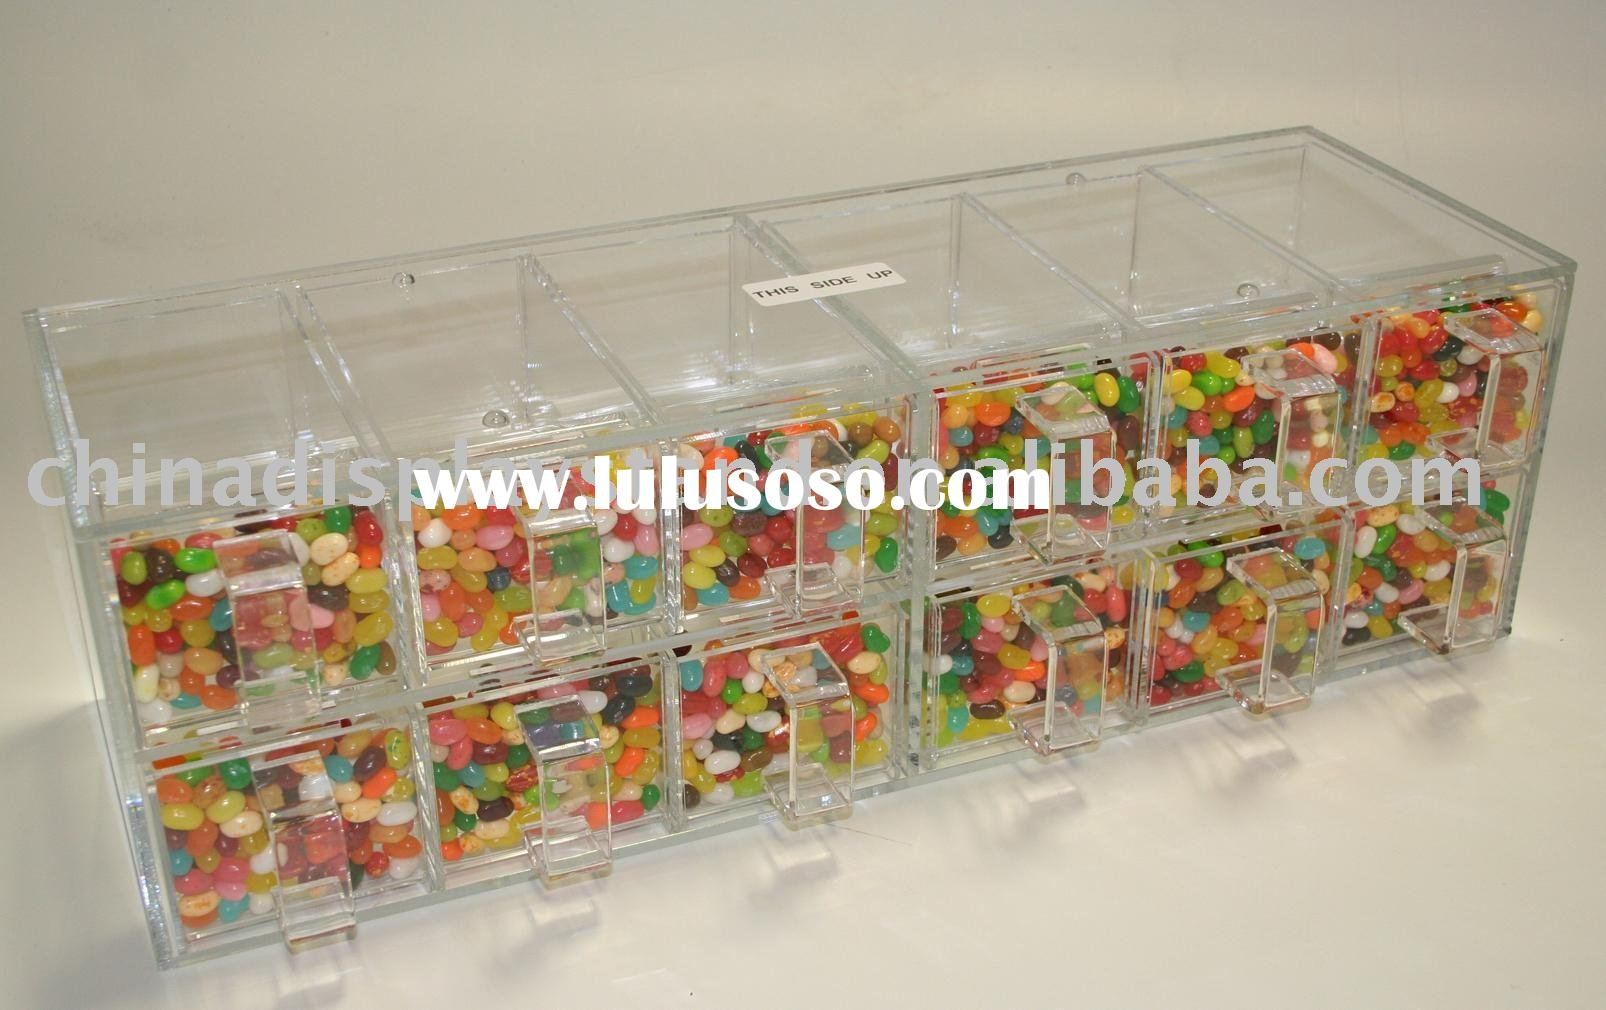 acrylic candy box,acrylic display,gift box,acrylic case,acrylic holder,acrylic showcase